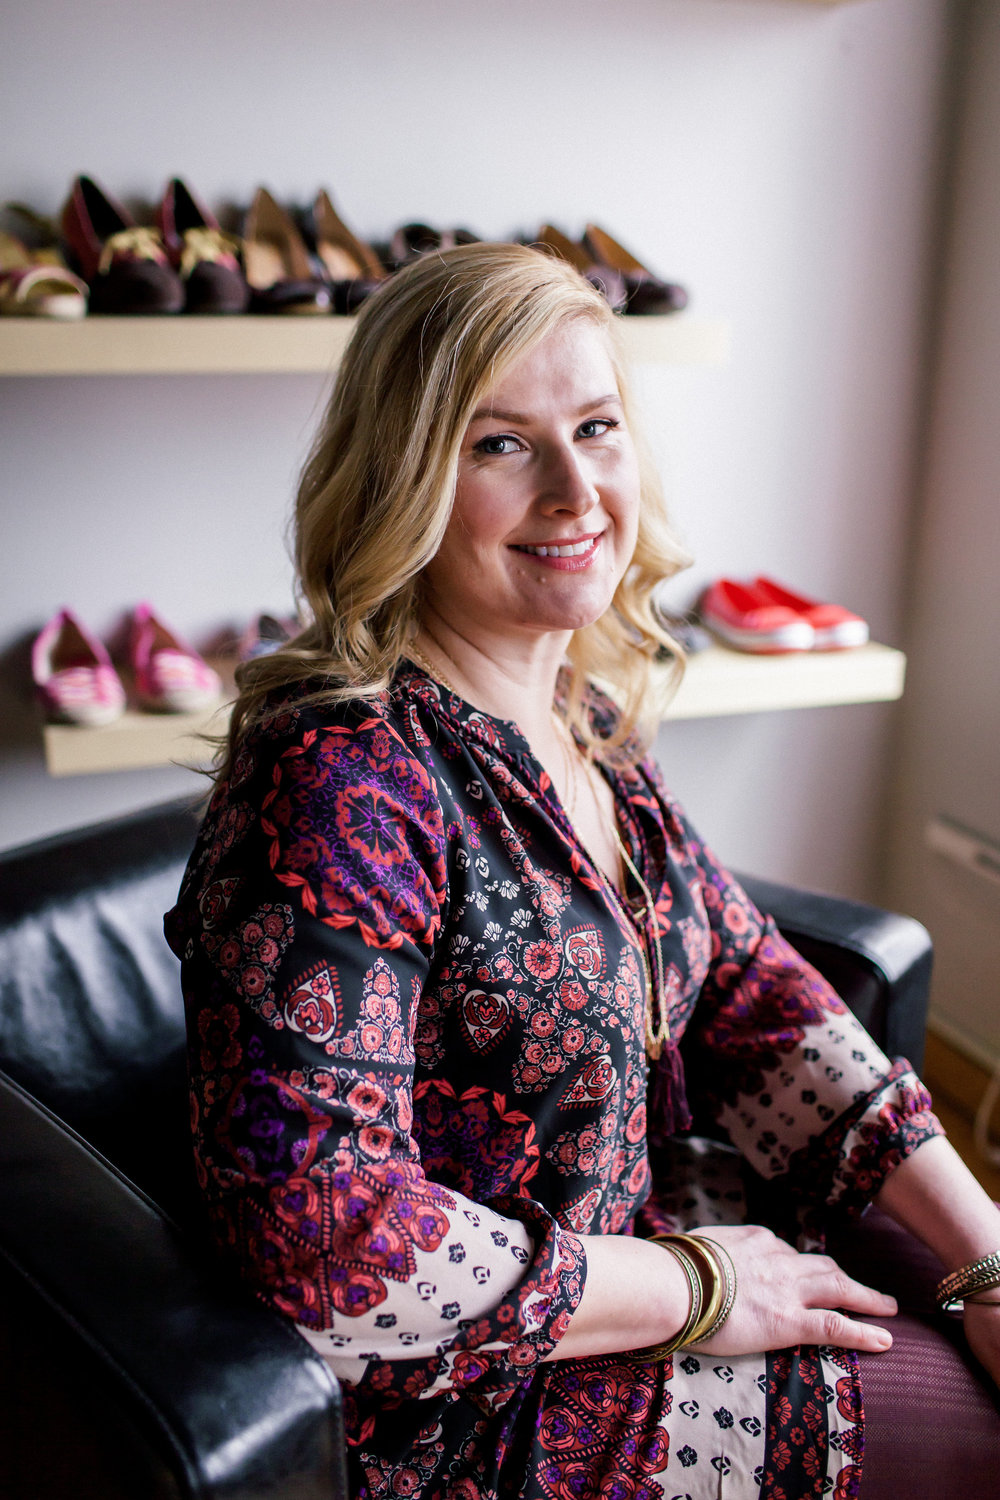 Being a small business owner and a mother of three daughters keeps Brynne busy! Brynne likes pieces that are versatile and fun and is always up for trying a new trend.